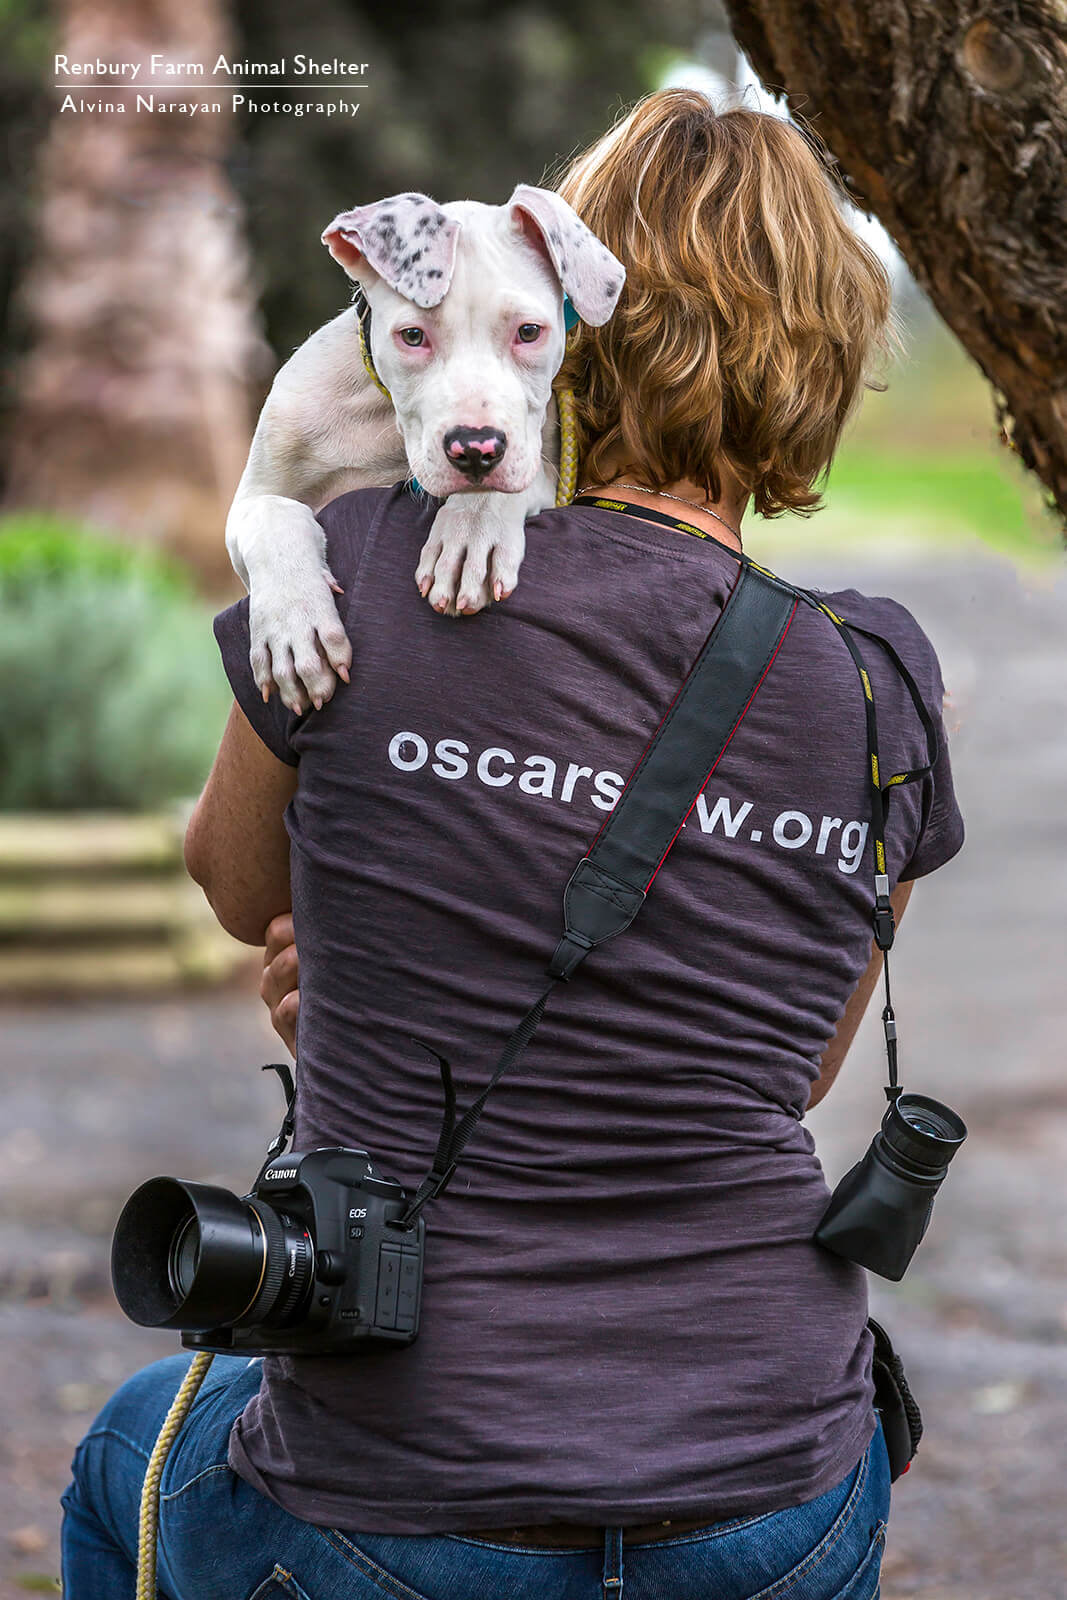 Jo Lyons Photography - Volunteer Animal Rescue Photographer